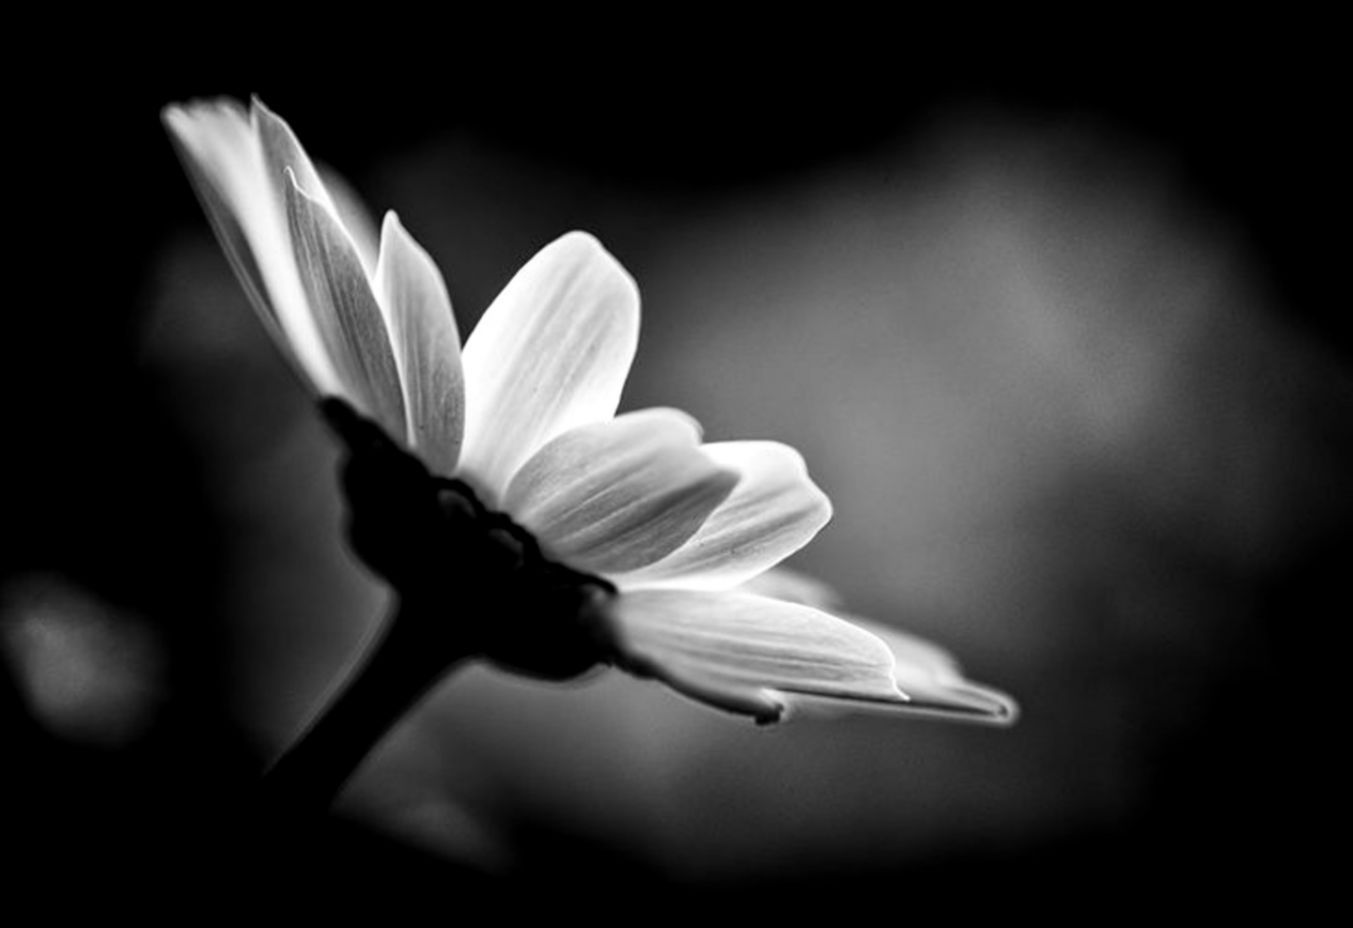 Black And White Flower Wallpapers Top Free Black And White Flower Backgrounds Wallpaperaccess